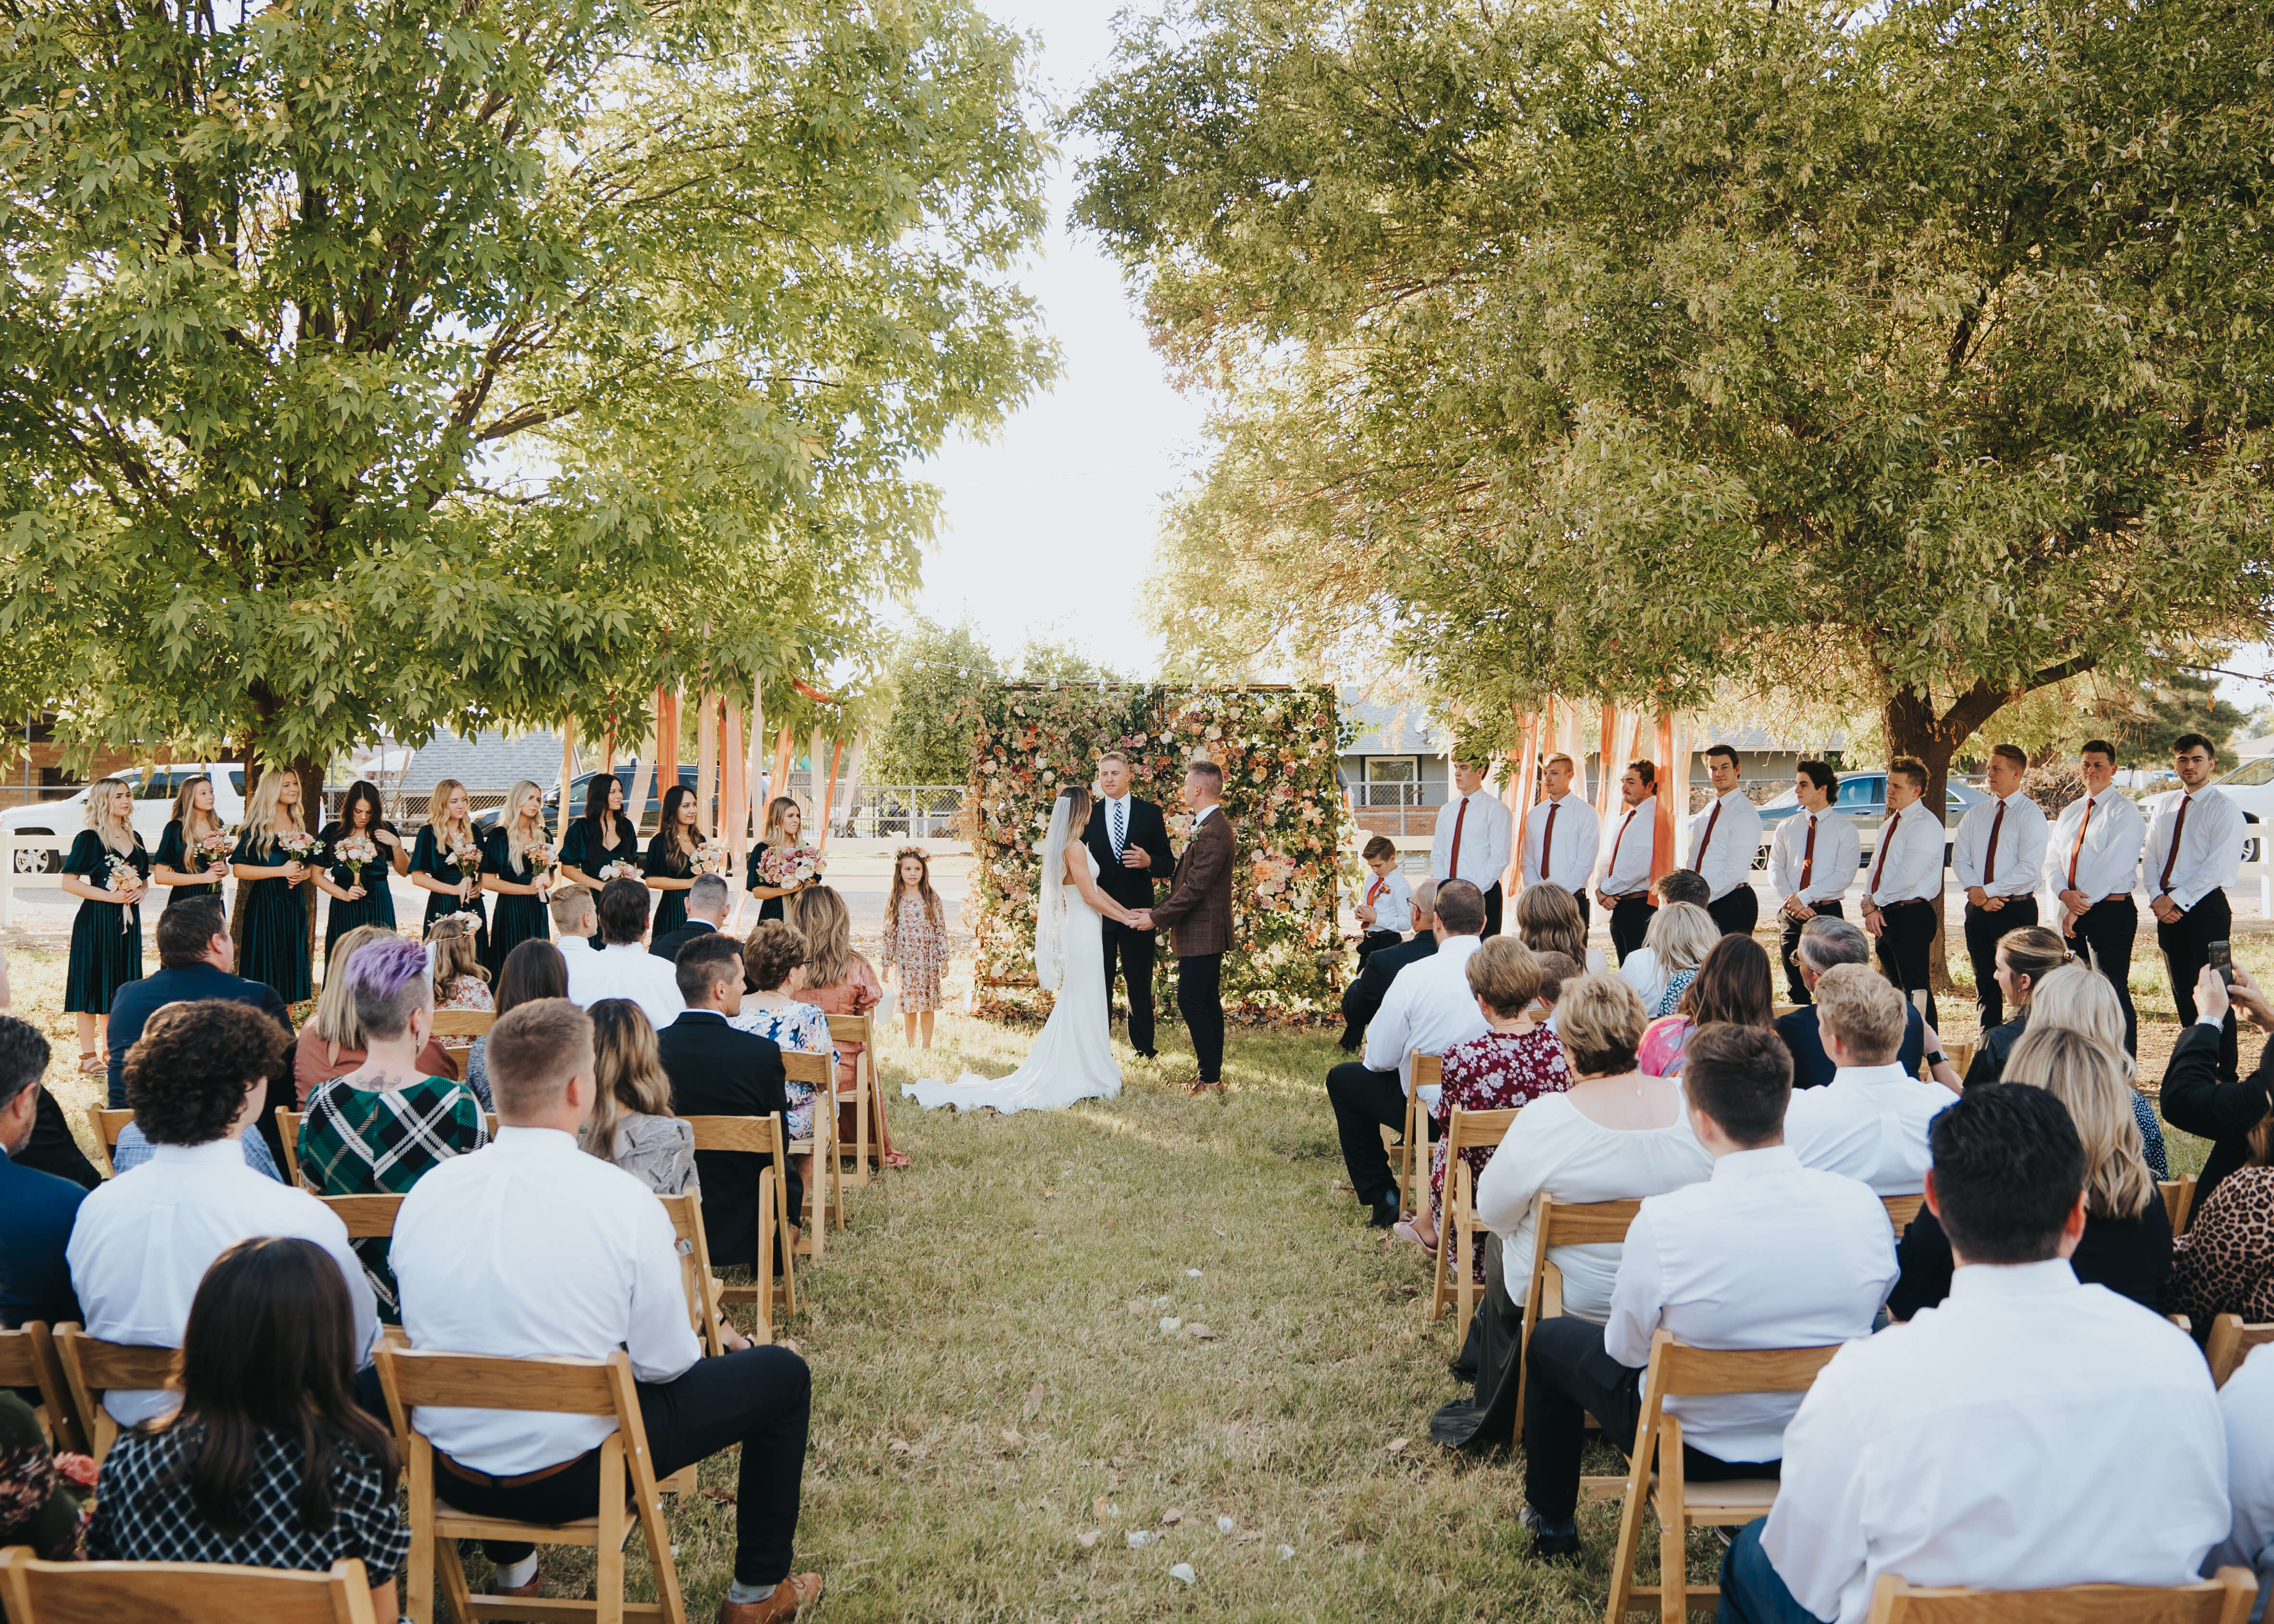 wedding ceremony with floral wall backdrop in arizona